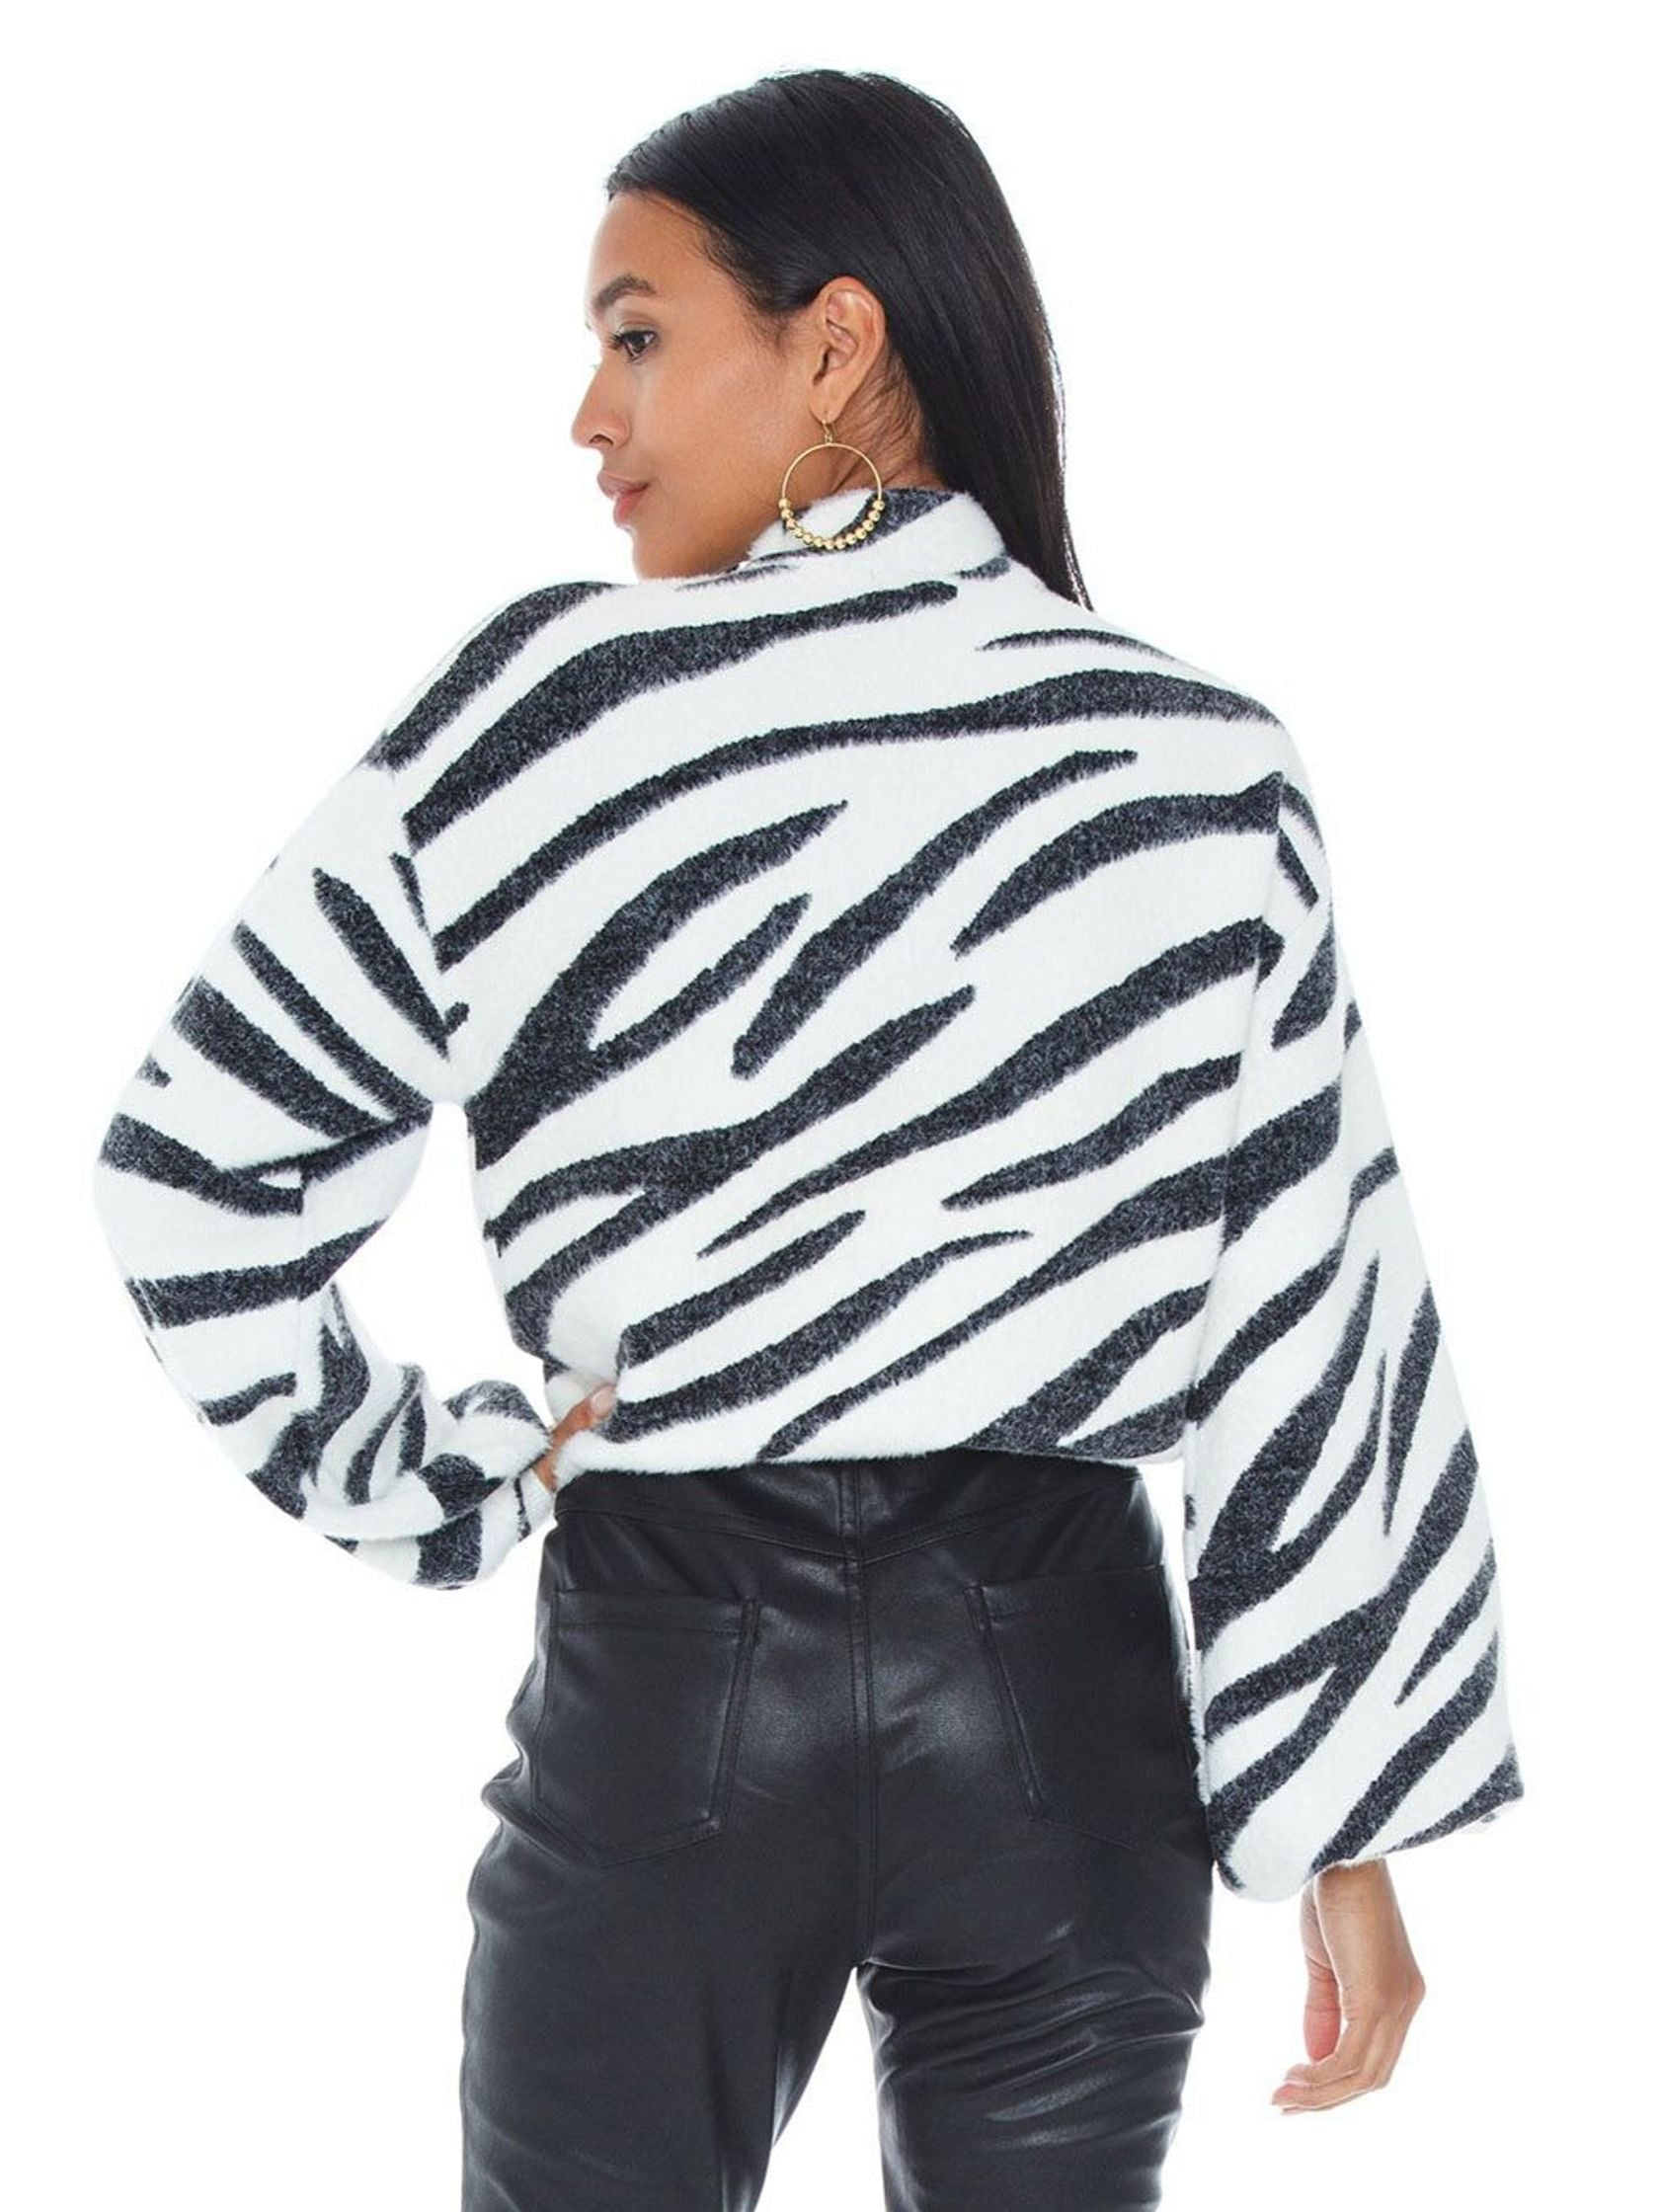 Women outfit in a sweater rental from BARDOT called Zebra Knit Jumper